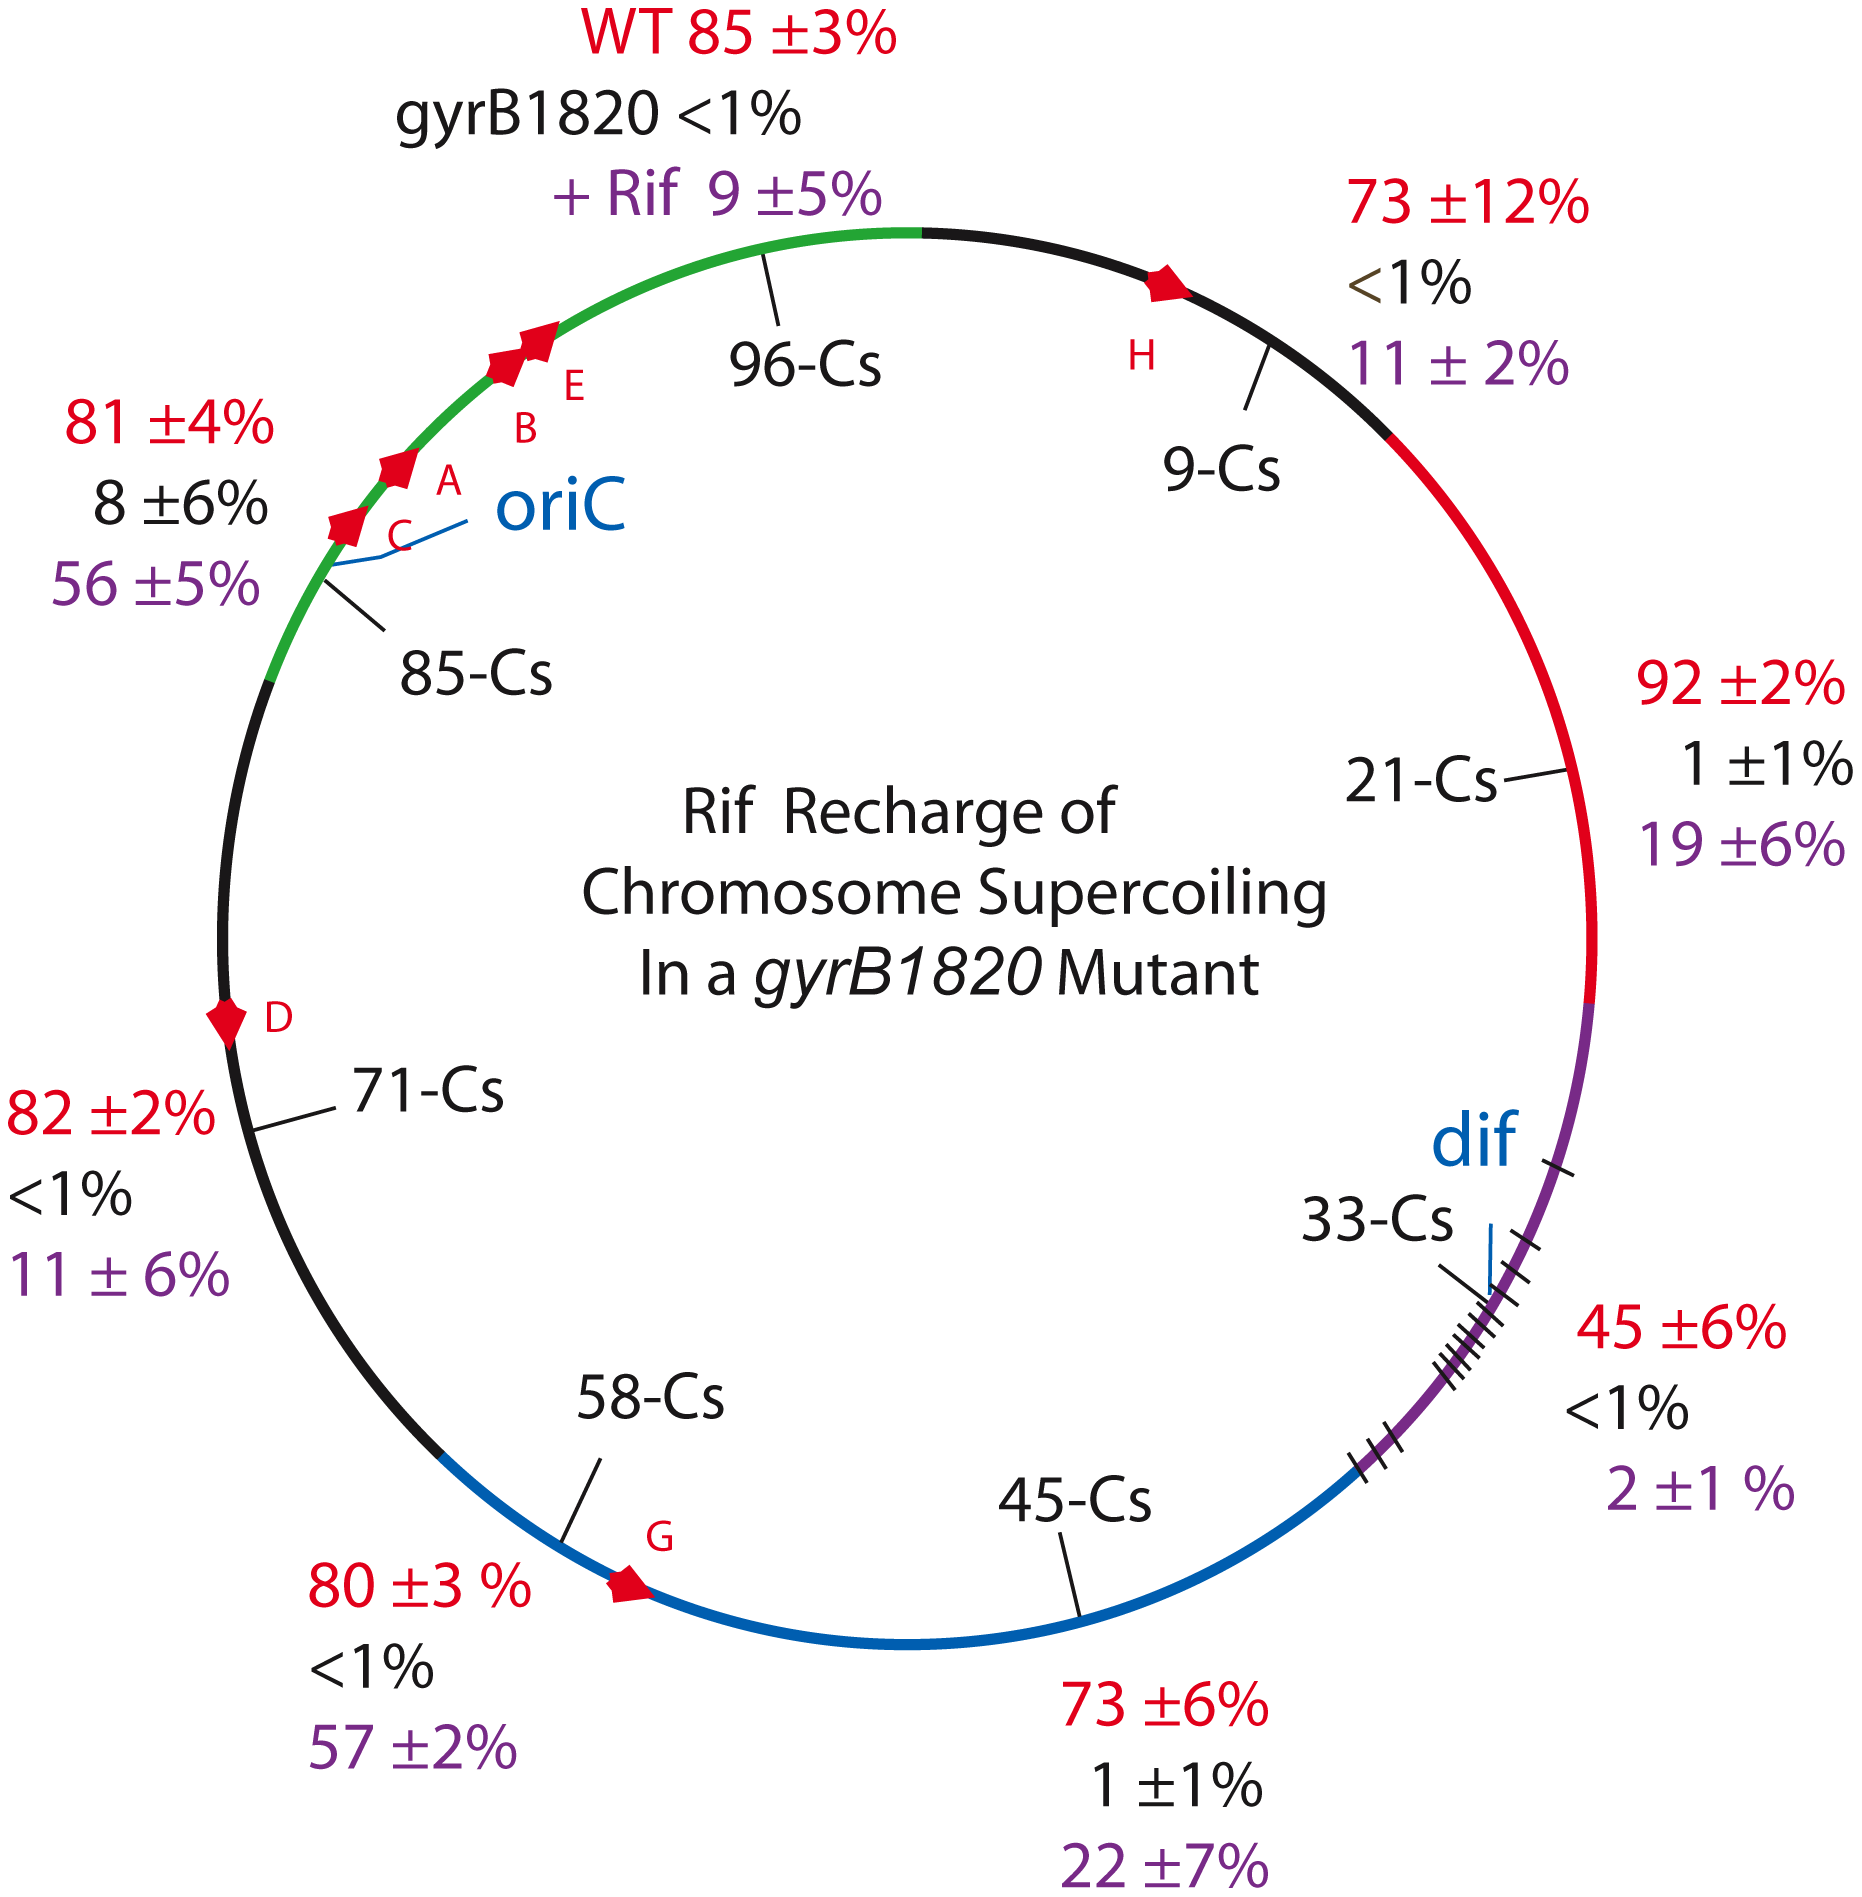 Interrupting transcription causes a dramatic rebound in resolution for strains carrying the GyrB1820 gyrase.